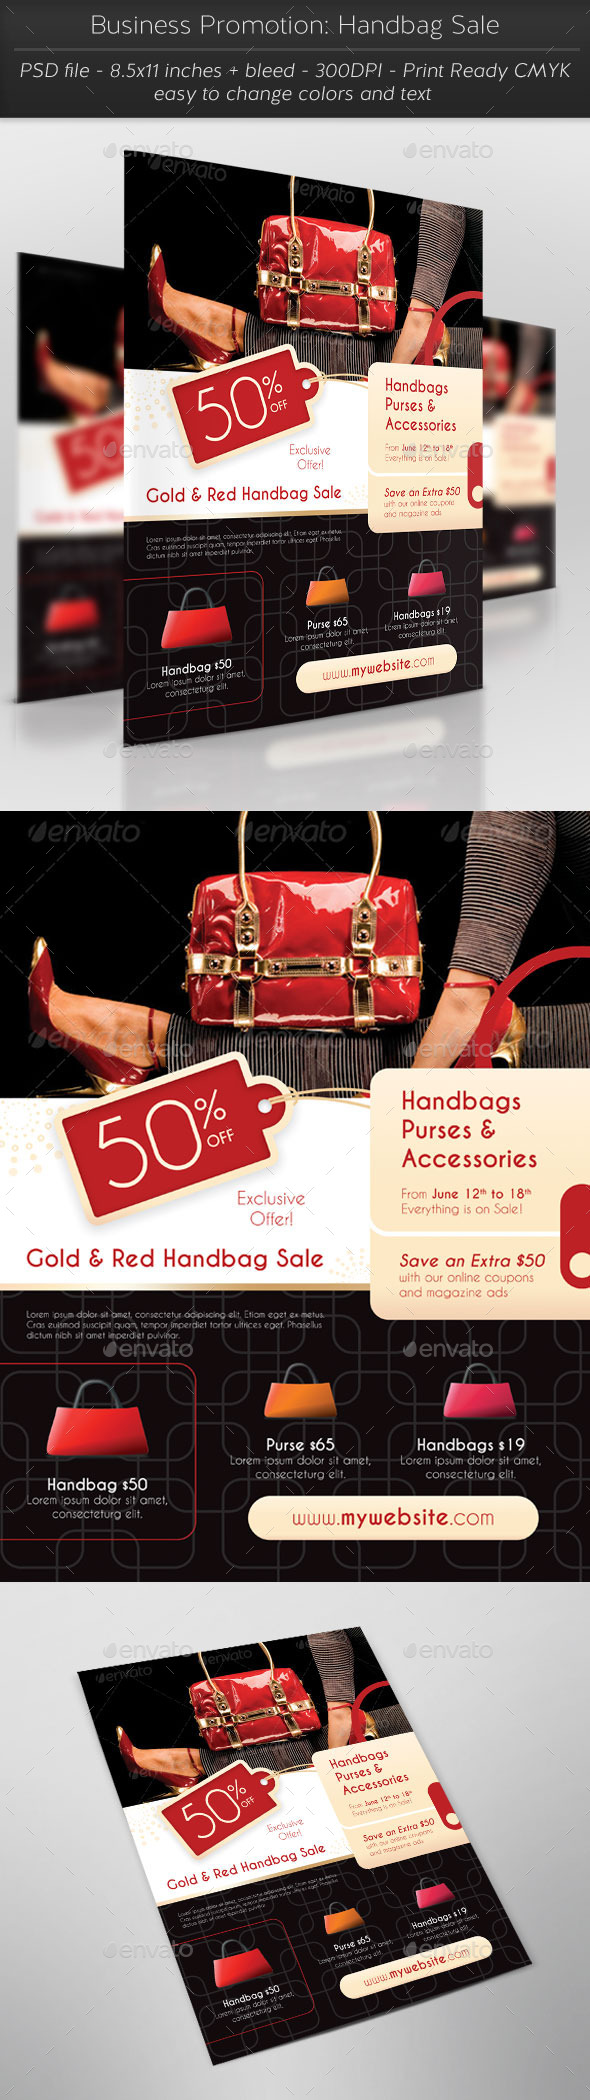 GraphicRiver Business Promotion Handbag Sale 11405040